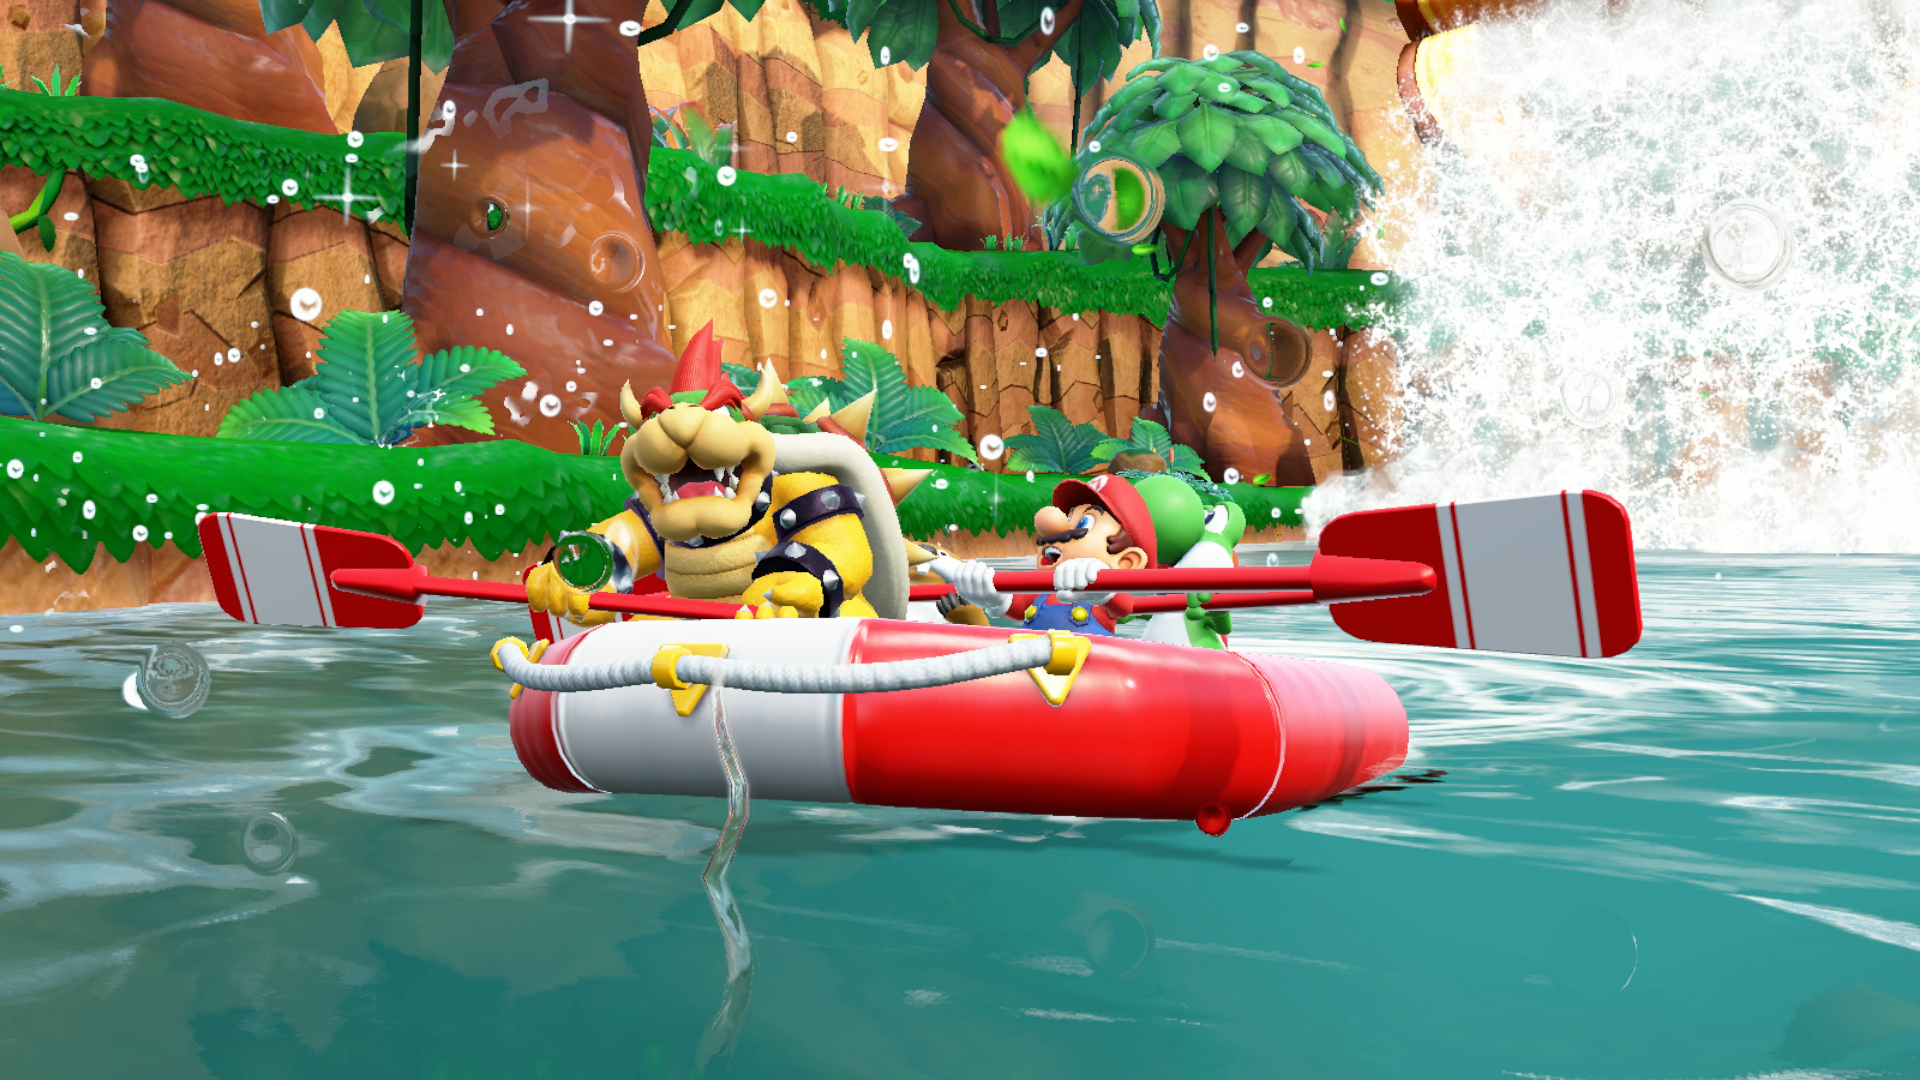 Four Months After Release, Super Mario Party Has Never Gotten An Update